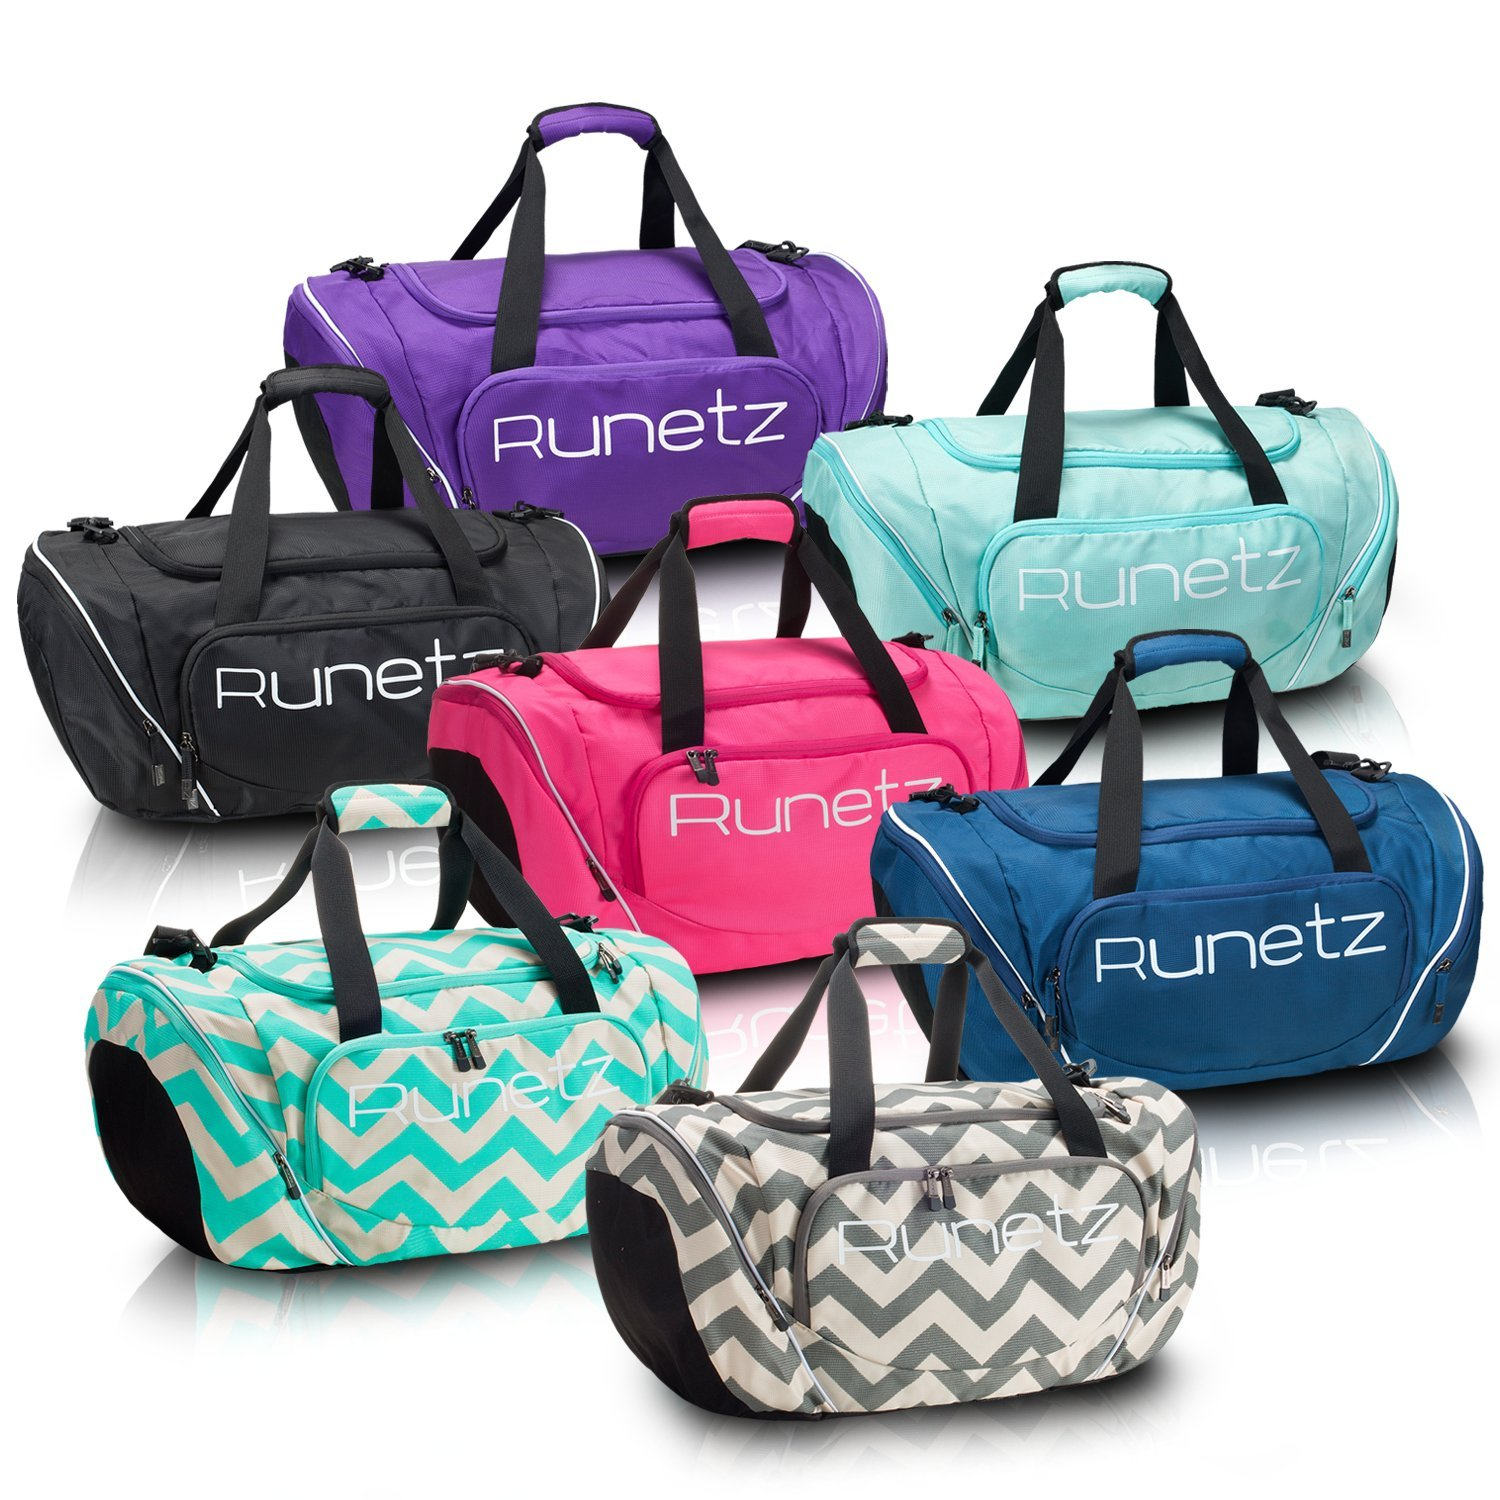 8c5c28d2ae47 Runetz Gym Bag for Women and Men Duffle Bag with Wet Pocket